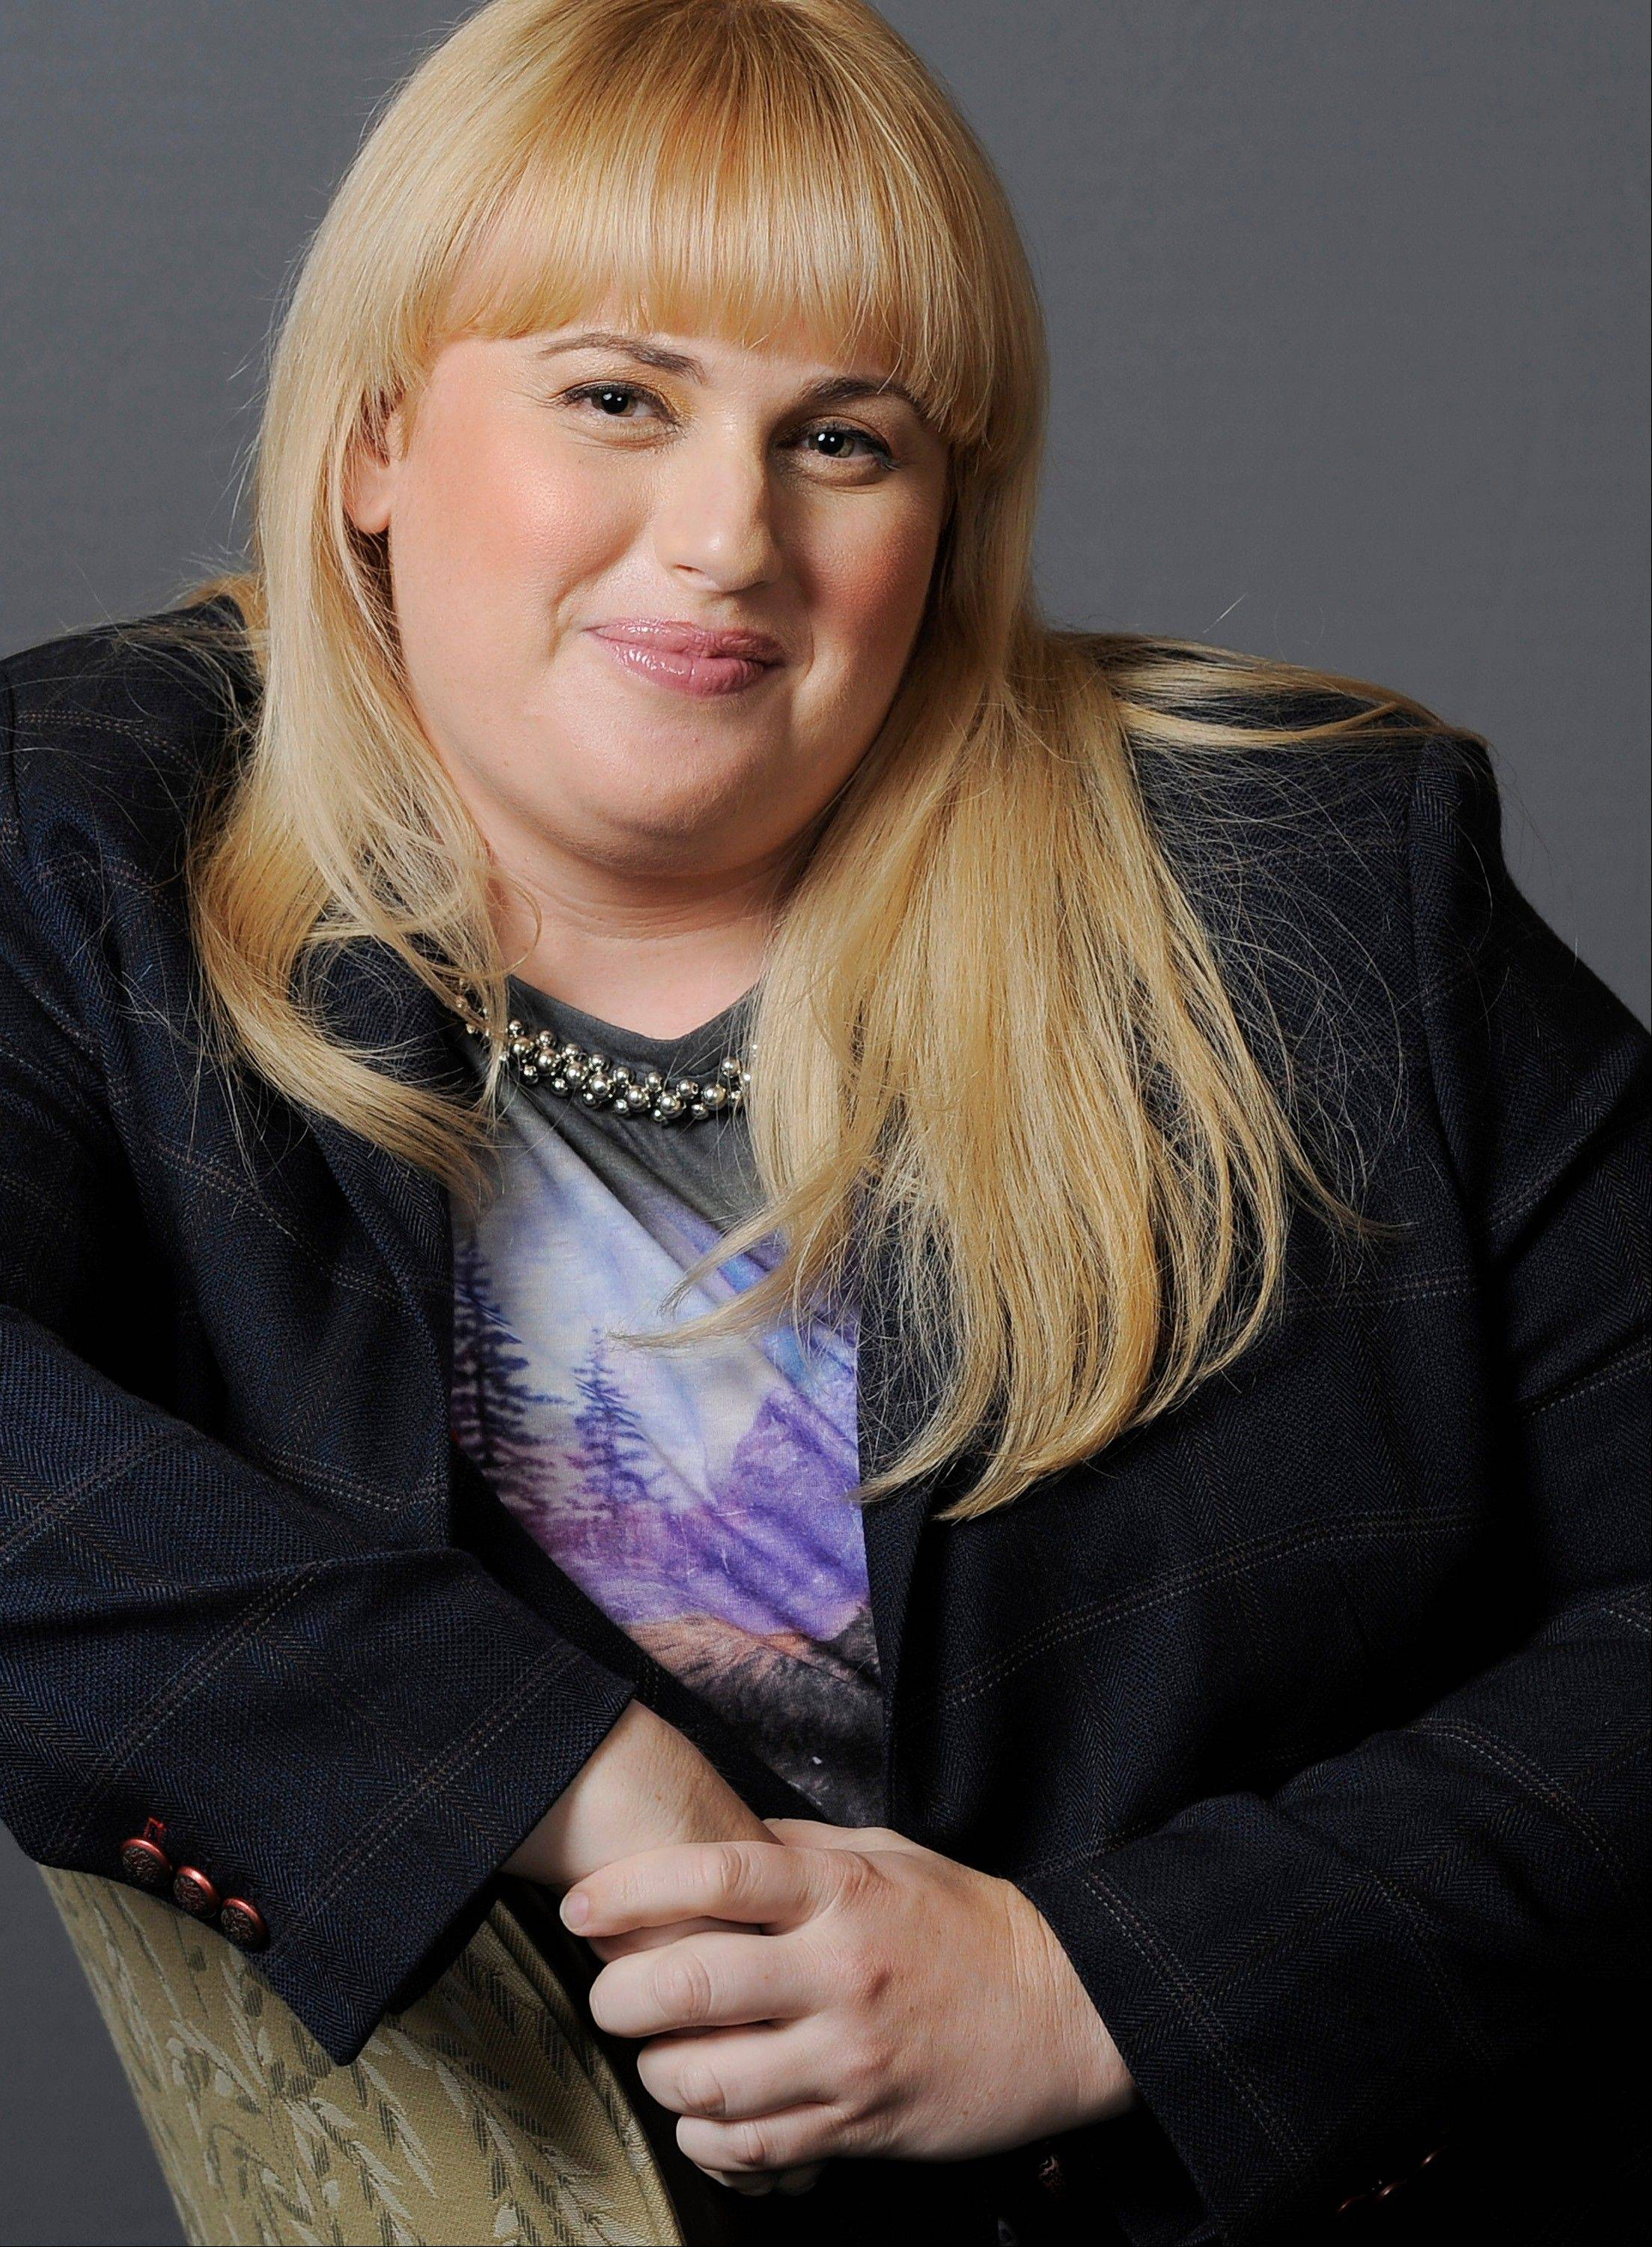 Actress, writer and comedienne Rebel Wilson sings, dances and summons laughs — and that's just in the opening moments of the upcoming MTV Movie Awards Sunday. The Australian actress is hosting the show, and she's set to start the ceremony by singing solo.